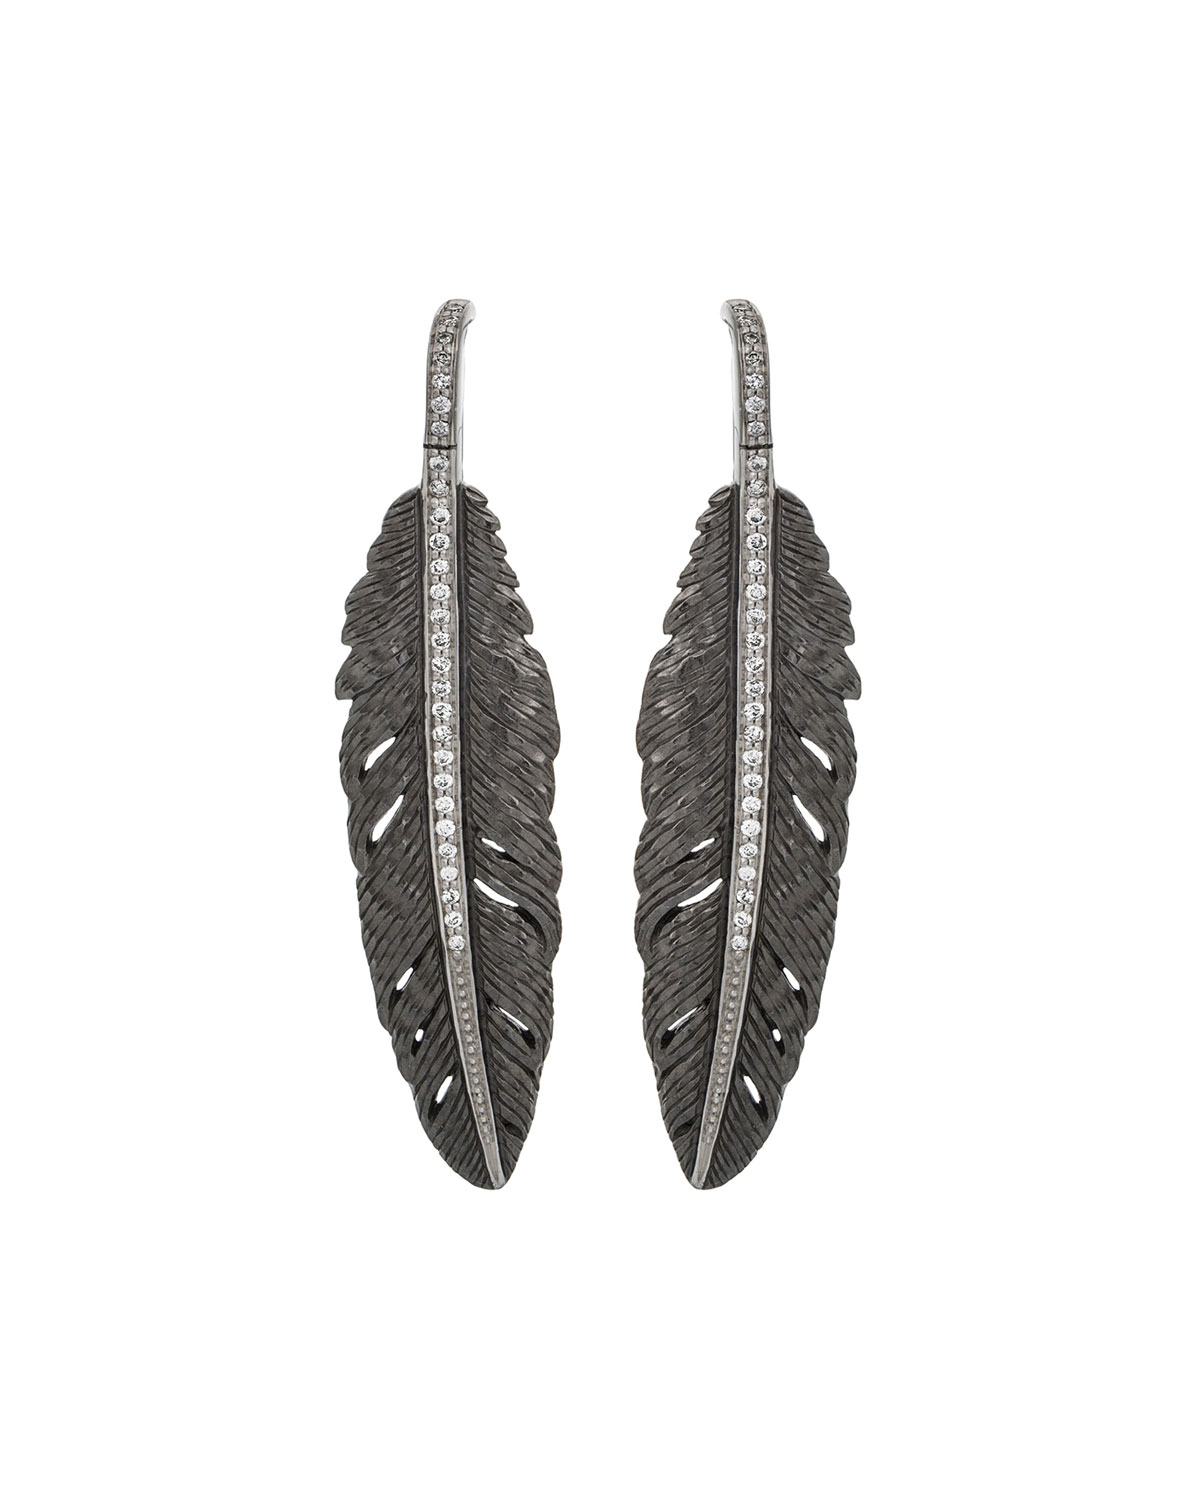 Michael Aram Feather Drop Earrings w/ Diamonds